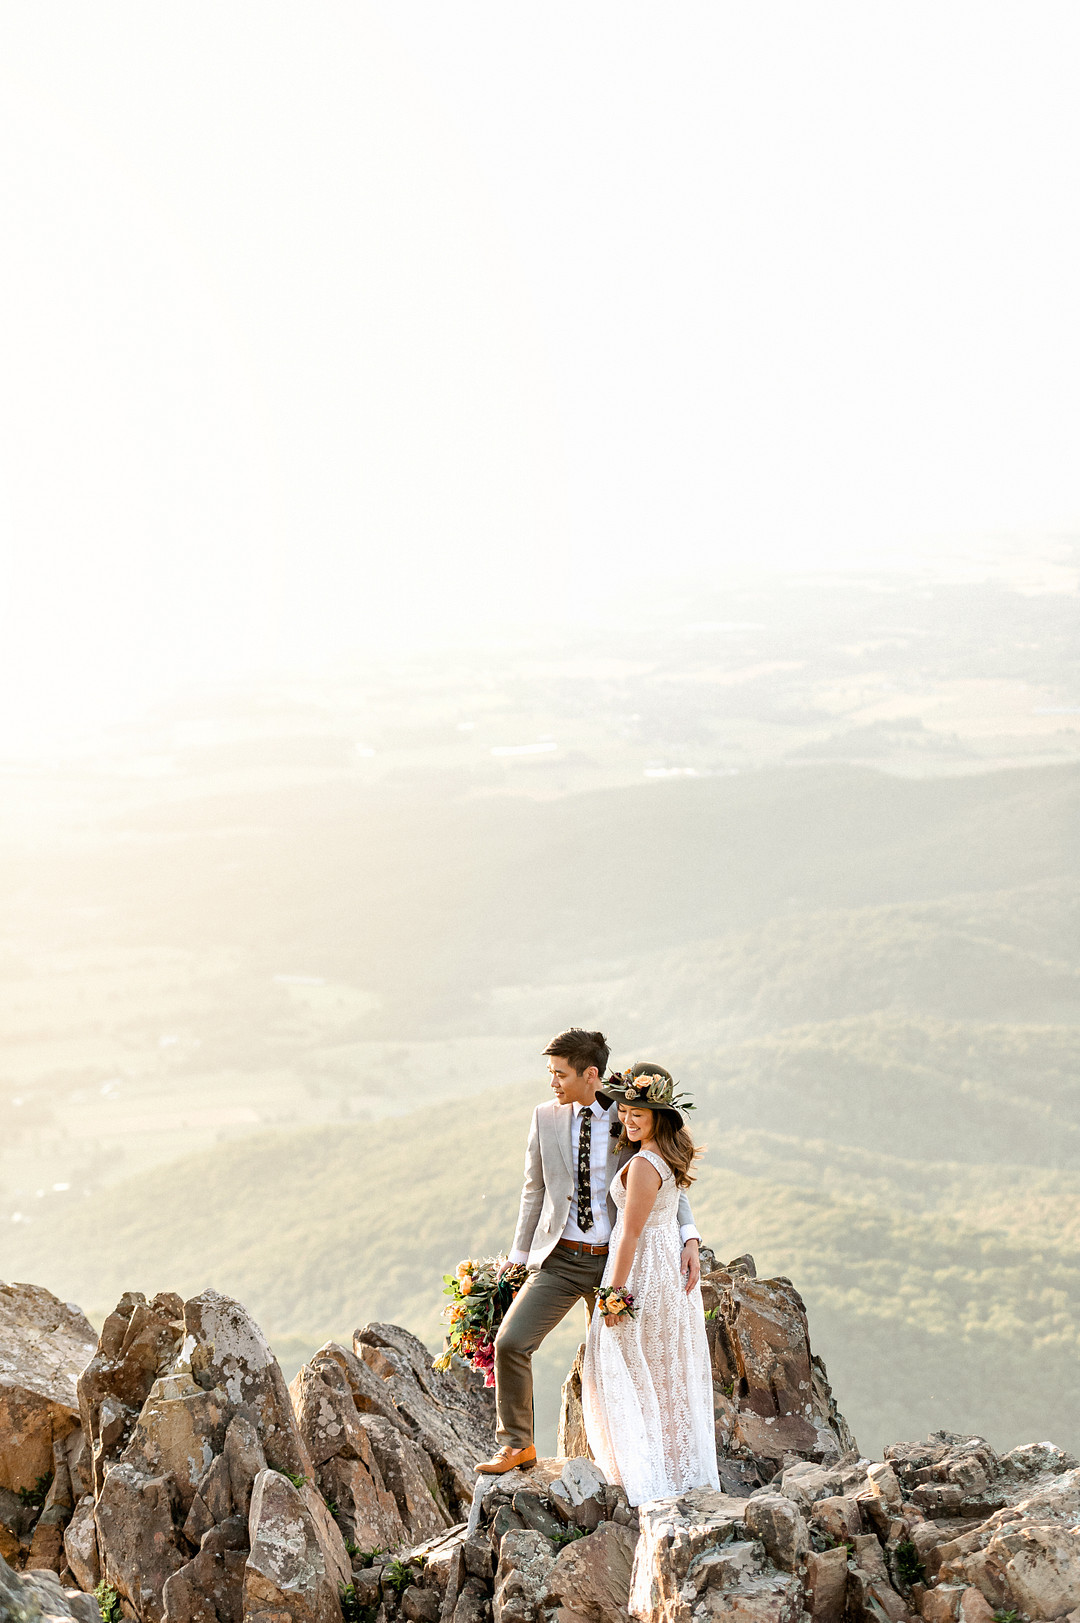 Boho Mountain Elopement in Shenandoah National Park_1001 Angles Photography_Shenandoah National Park Adventure Elopement-209_low